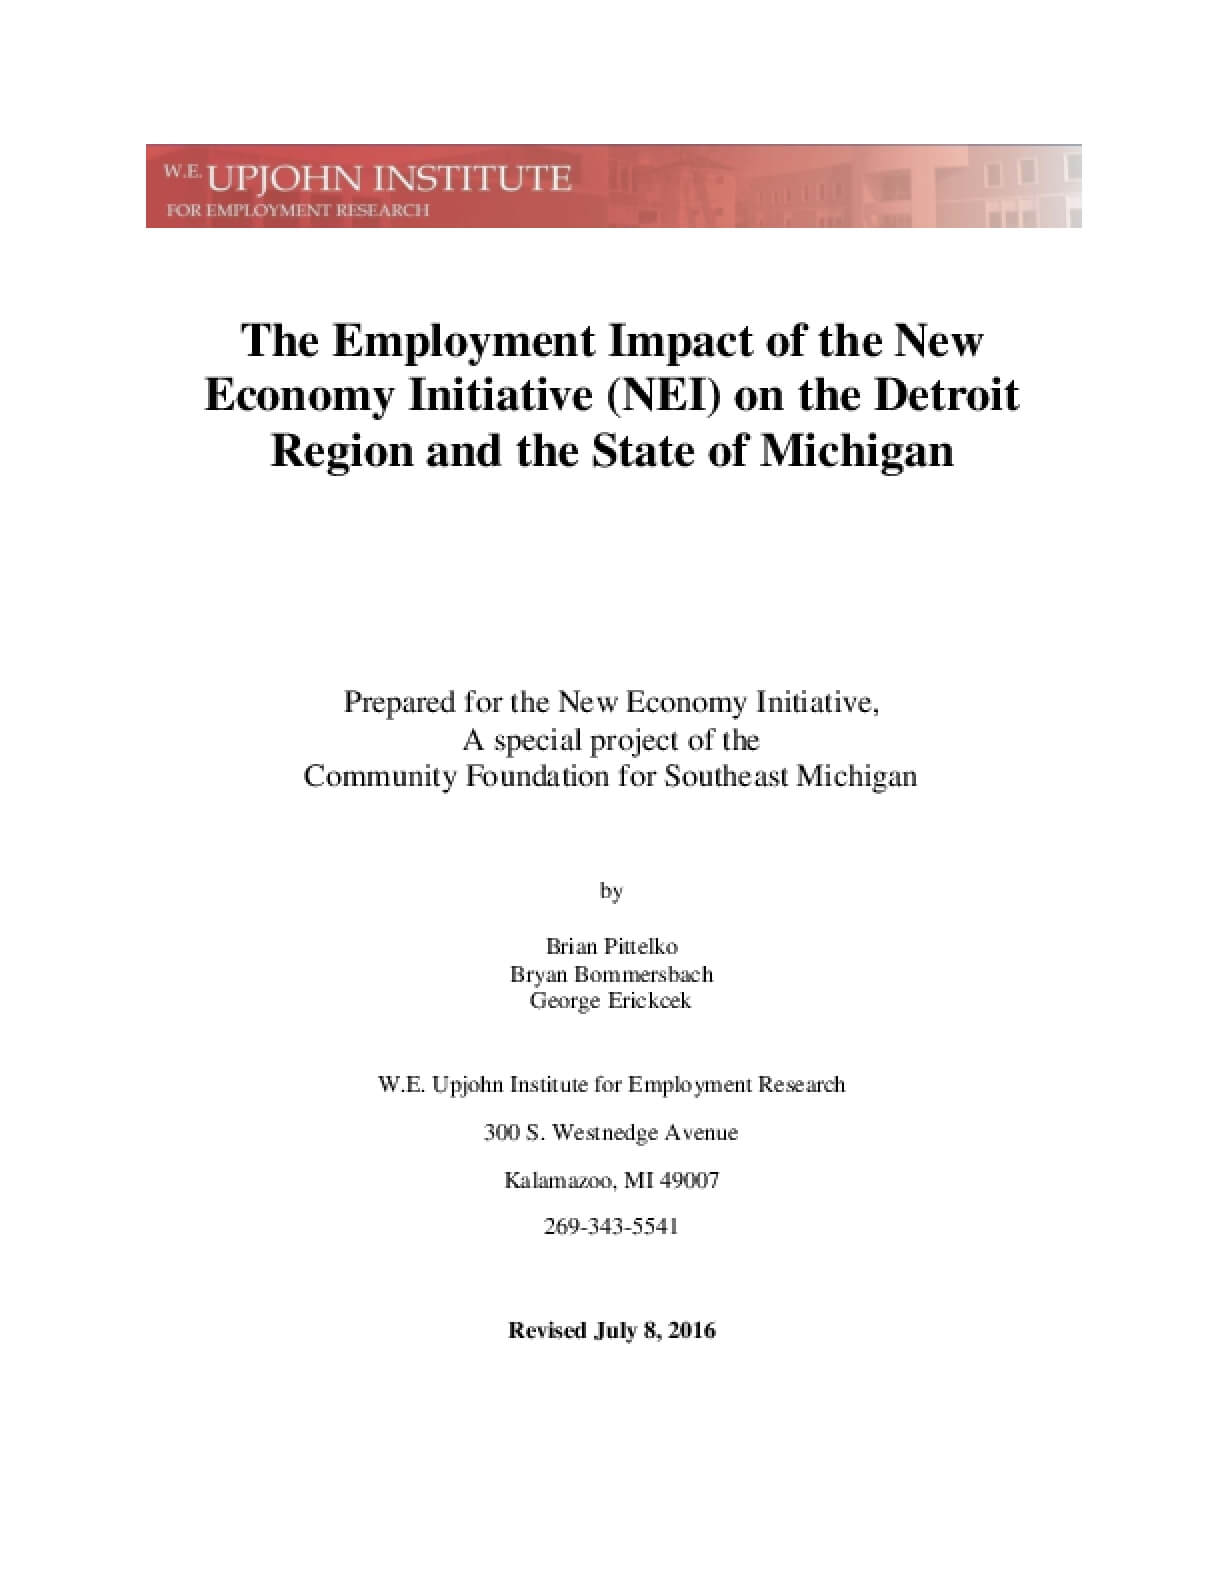 The Employment Impact of the New Economy Initiative (NEI) on the Detroit Region and the State of Michigan